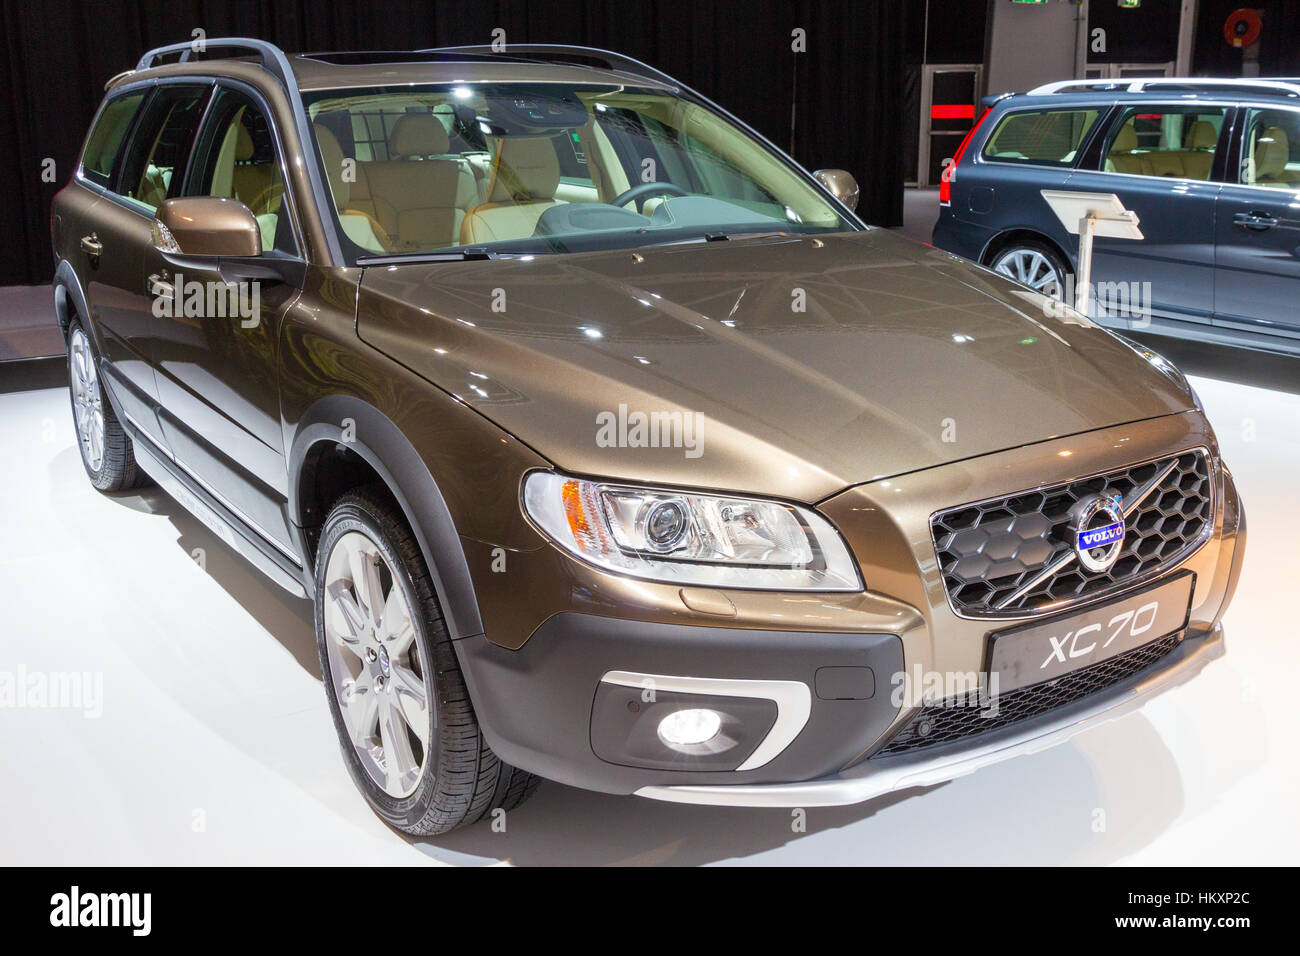 Volvo Garage Amsterdam : Volvo stock photos volvo stock images alamy